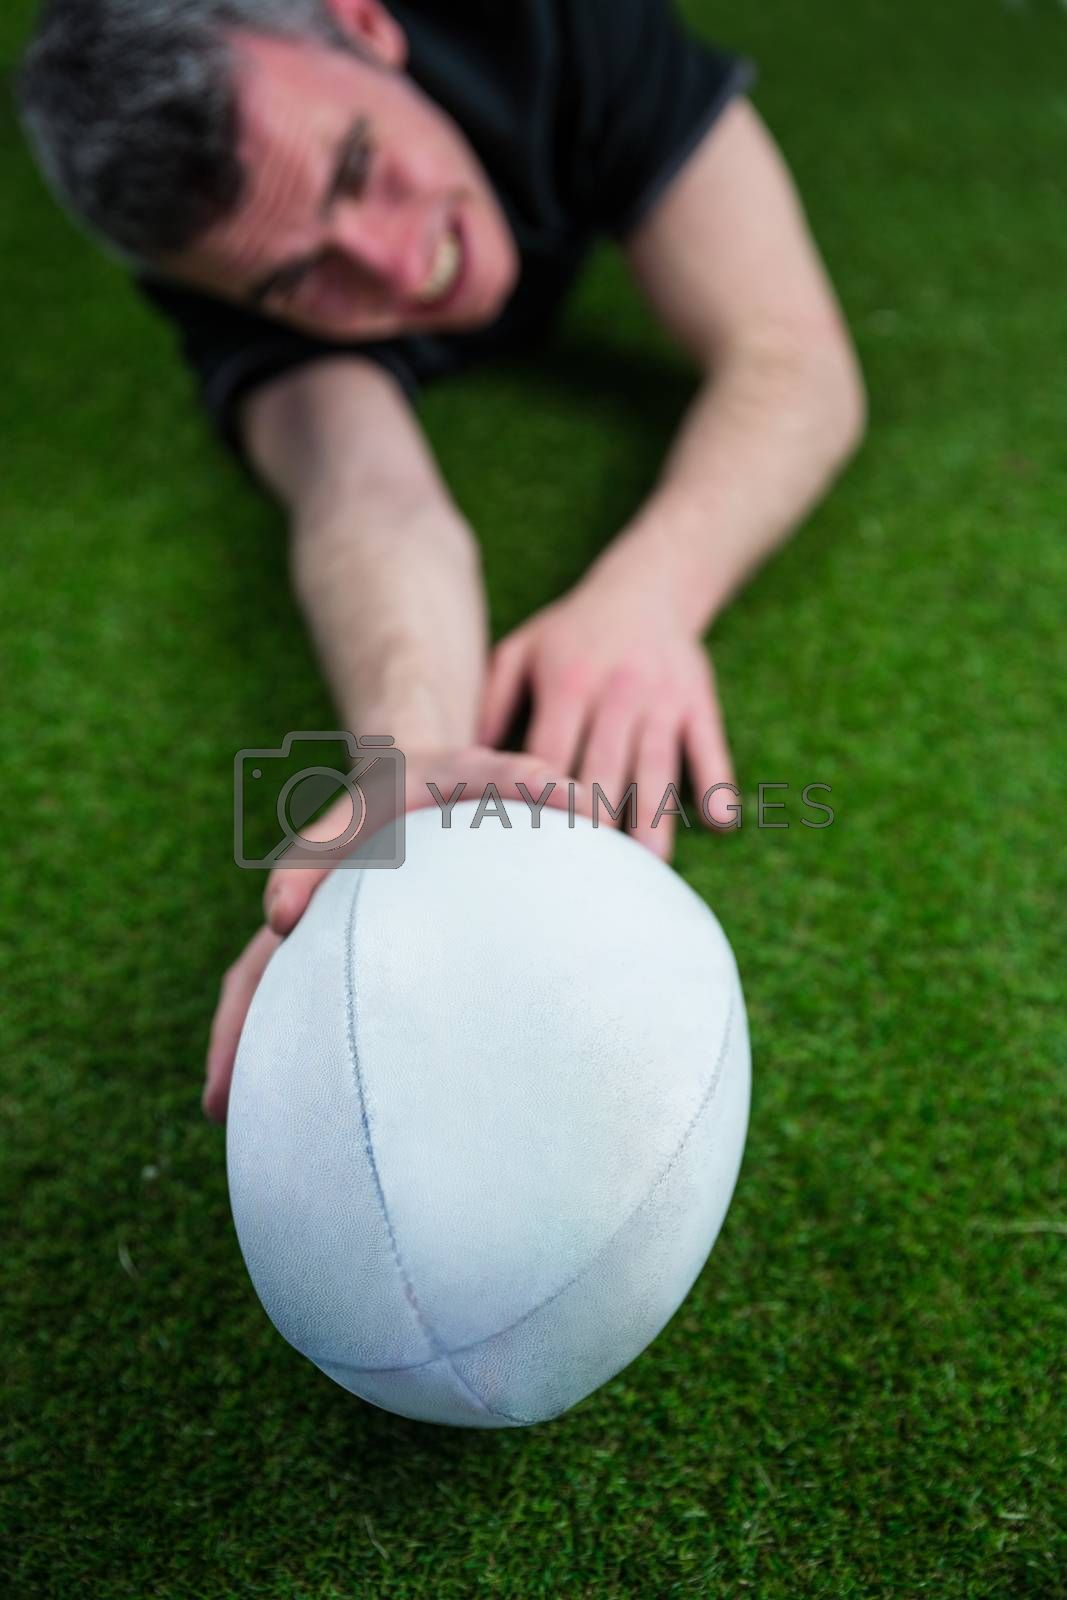 Royalty free image of A rugby player scoring a try by Wavebreakmedia